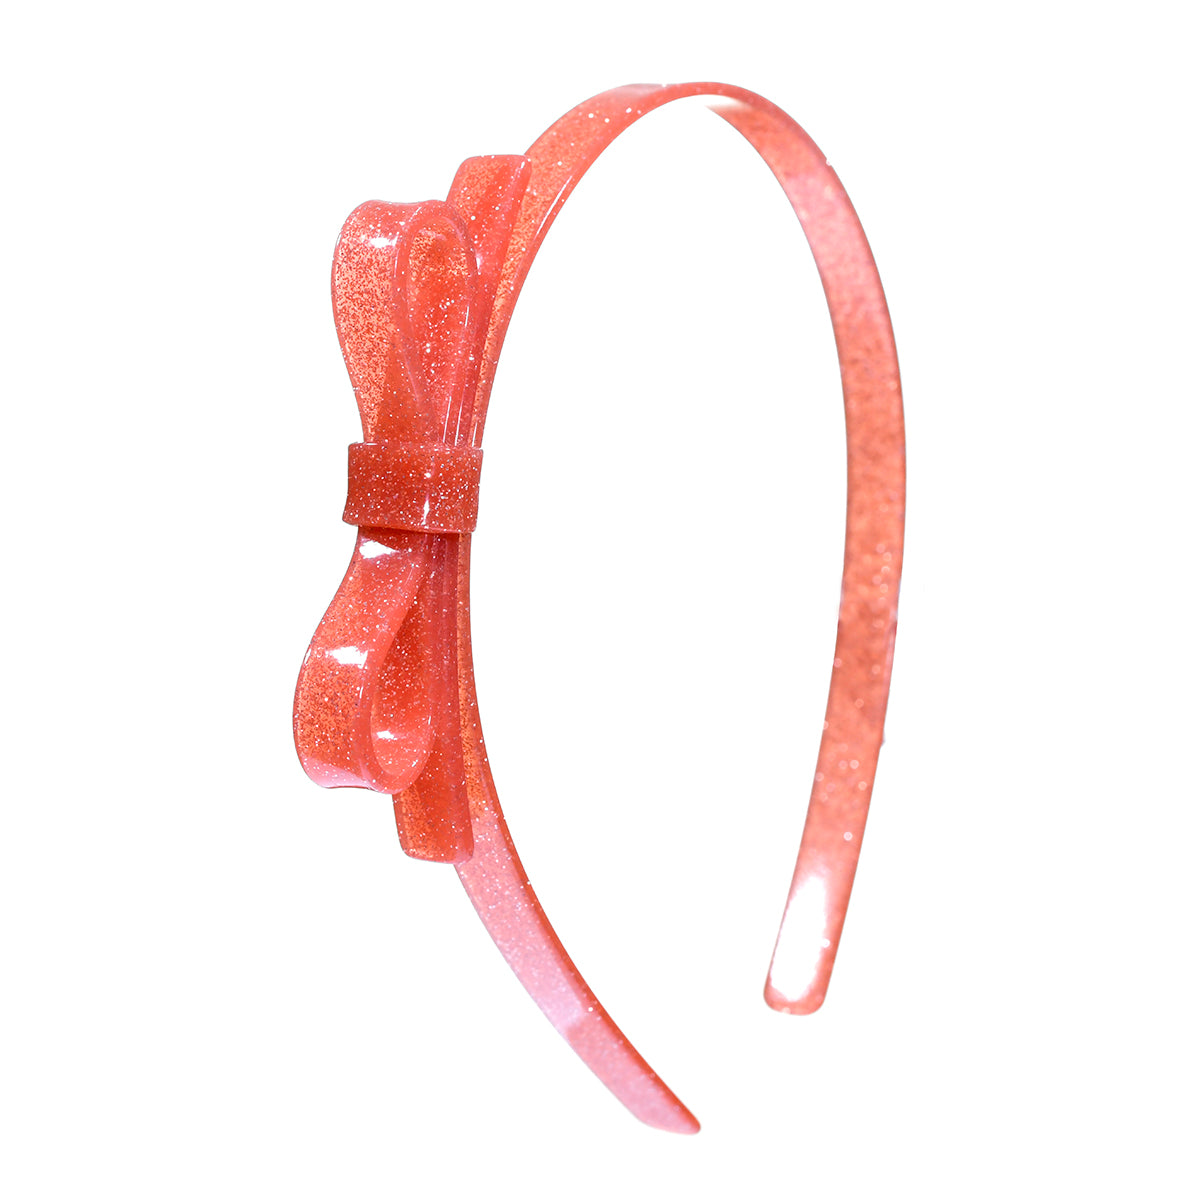 Thin Bow Headband - Coral Glitter